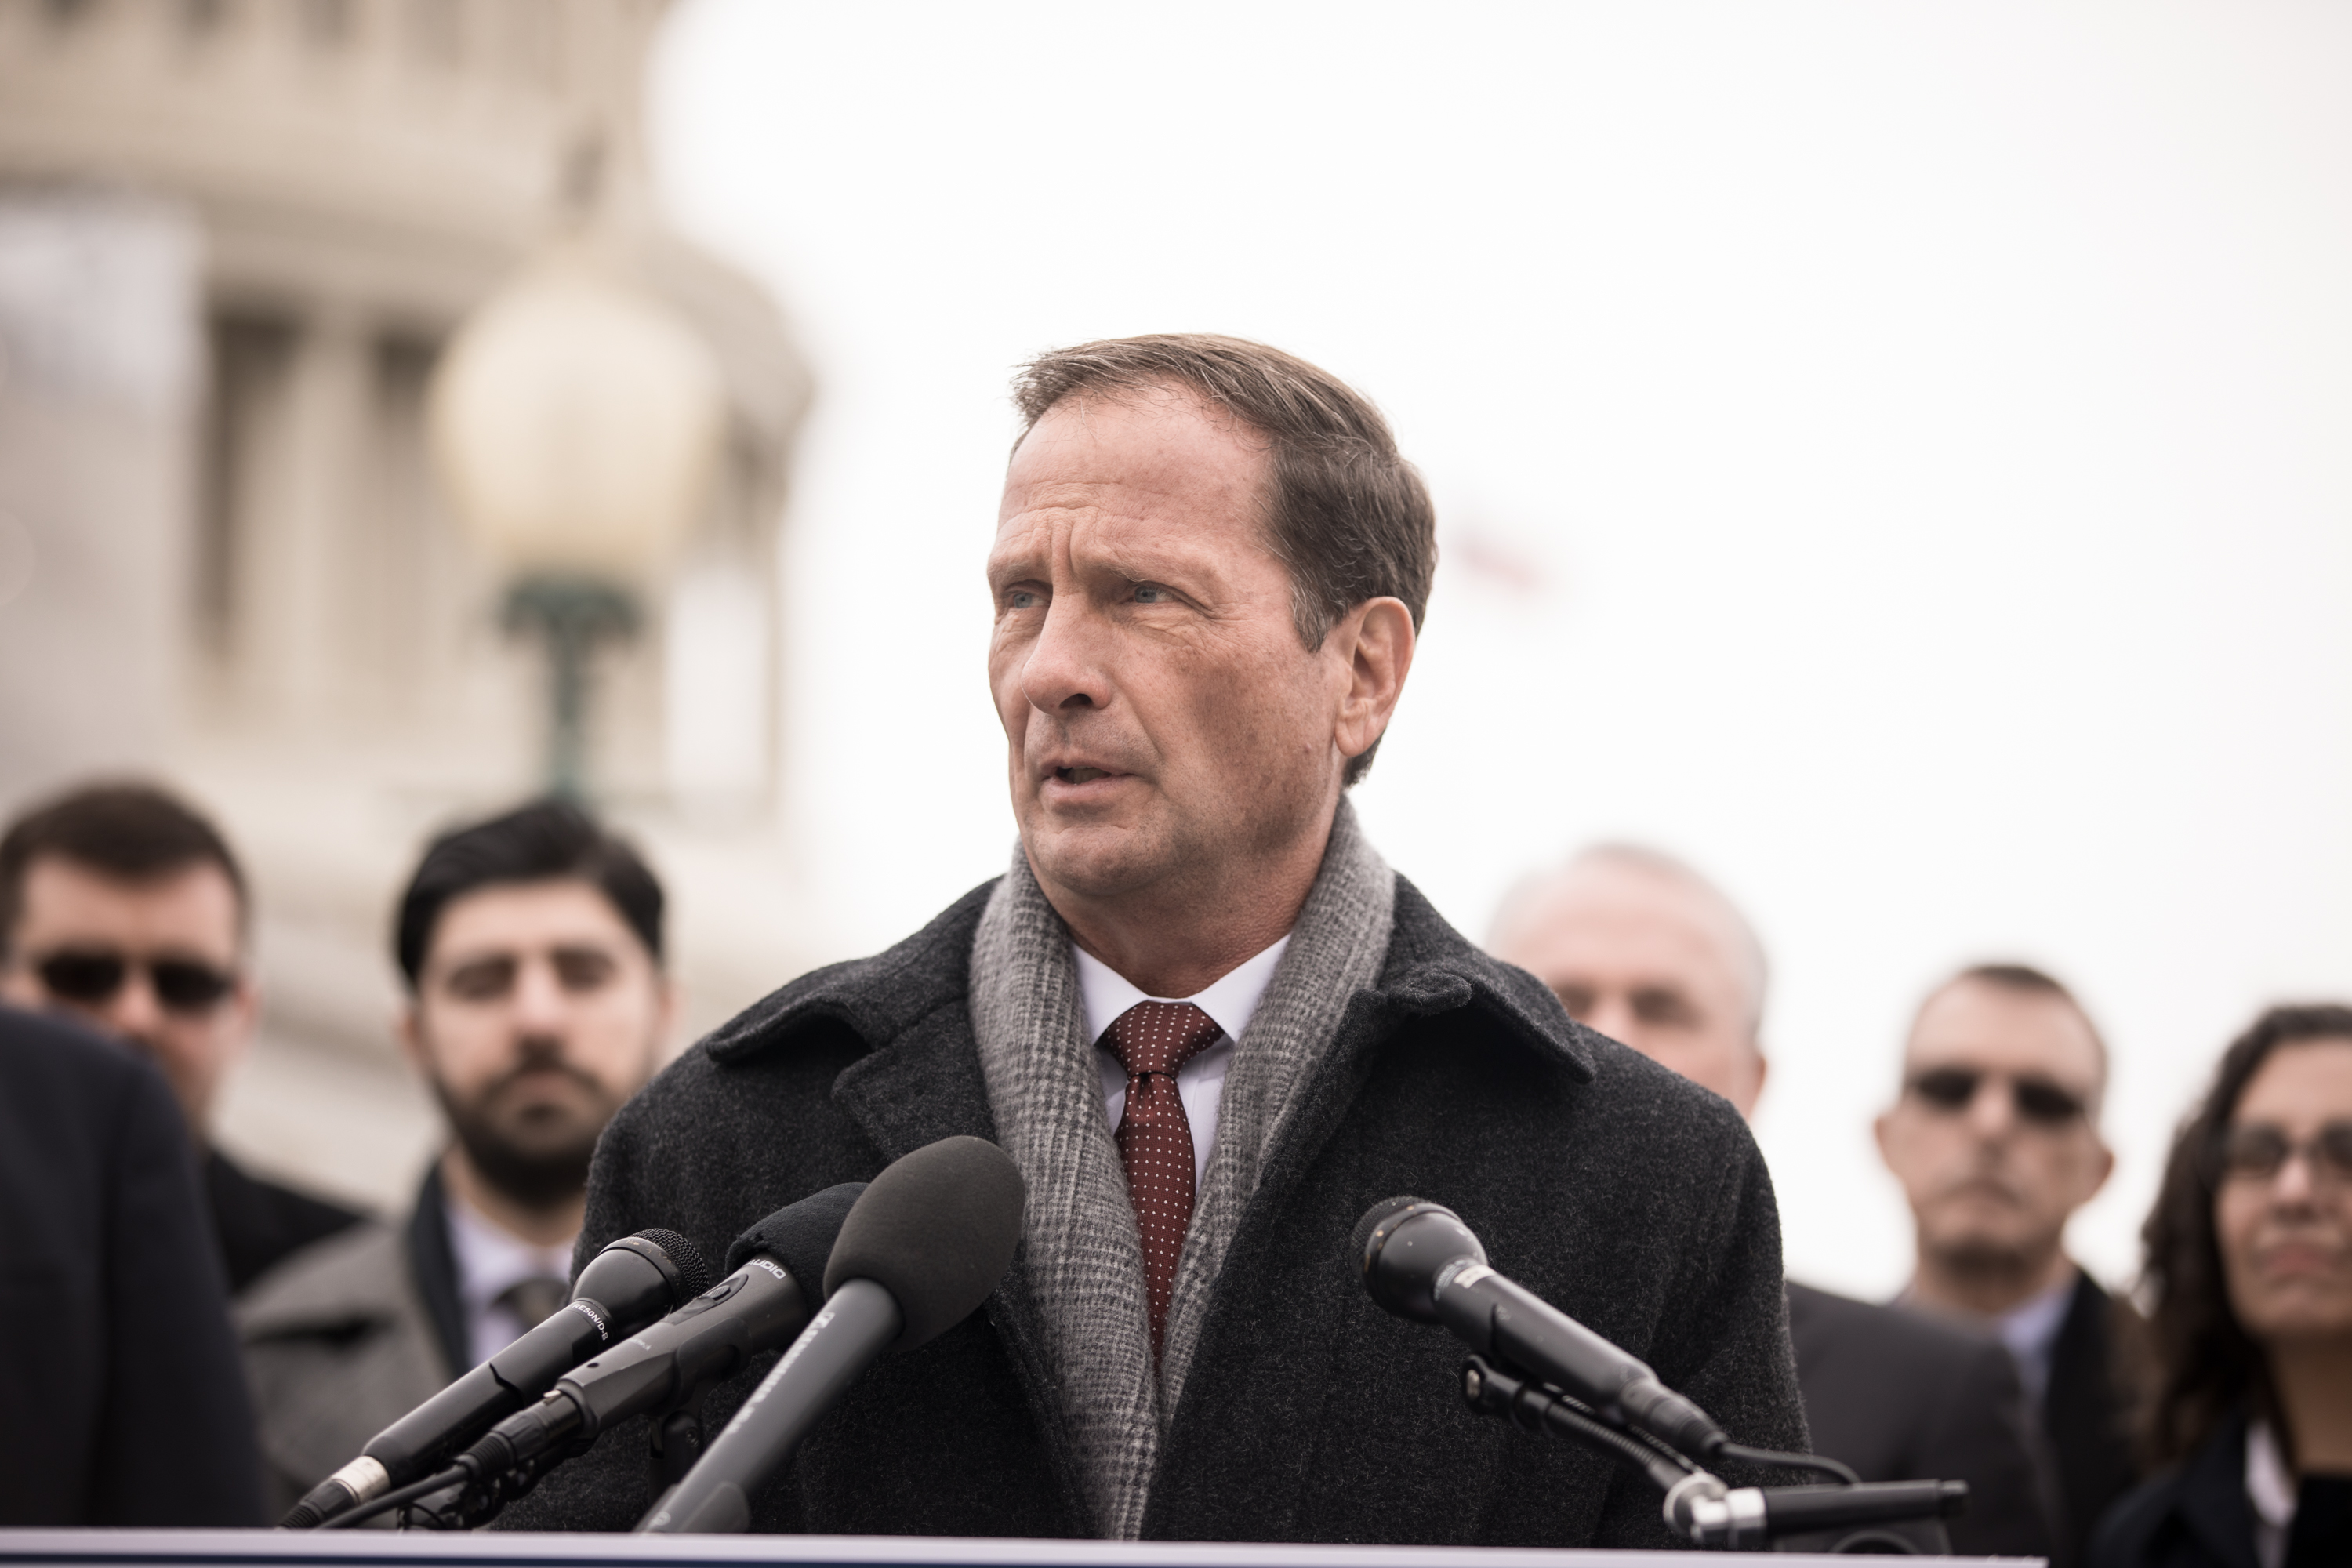 Congressman Chris Stewart, R-Utah, introduces his latest legislation, the Fairness for All Act, which aims to harmonize religious freedom and LGBT rights, during a press conference at the U.S. Capitol in Washington, D.C., on Friday, Dec. 6, 2019.